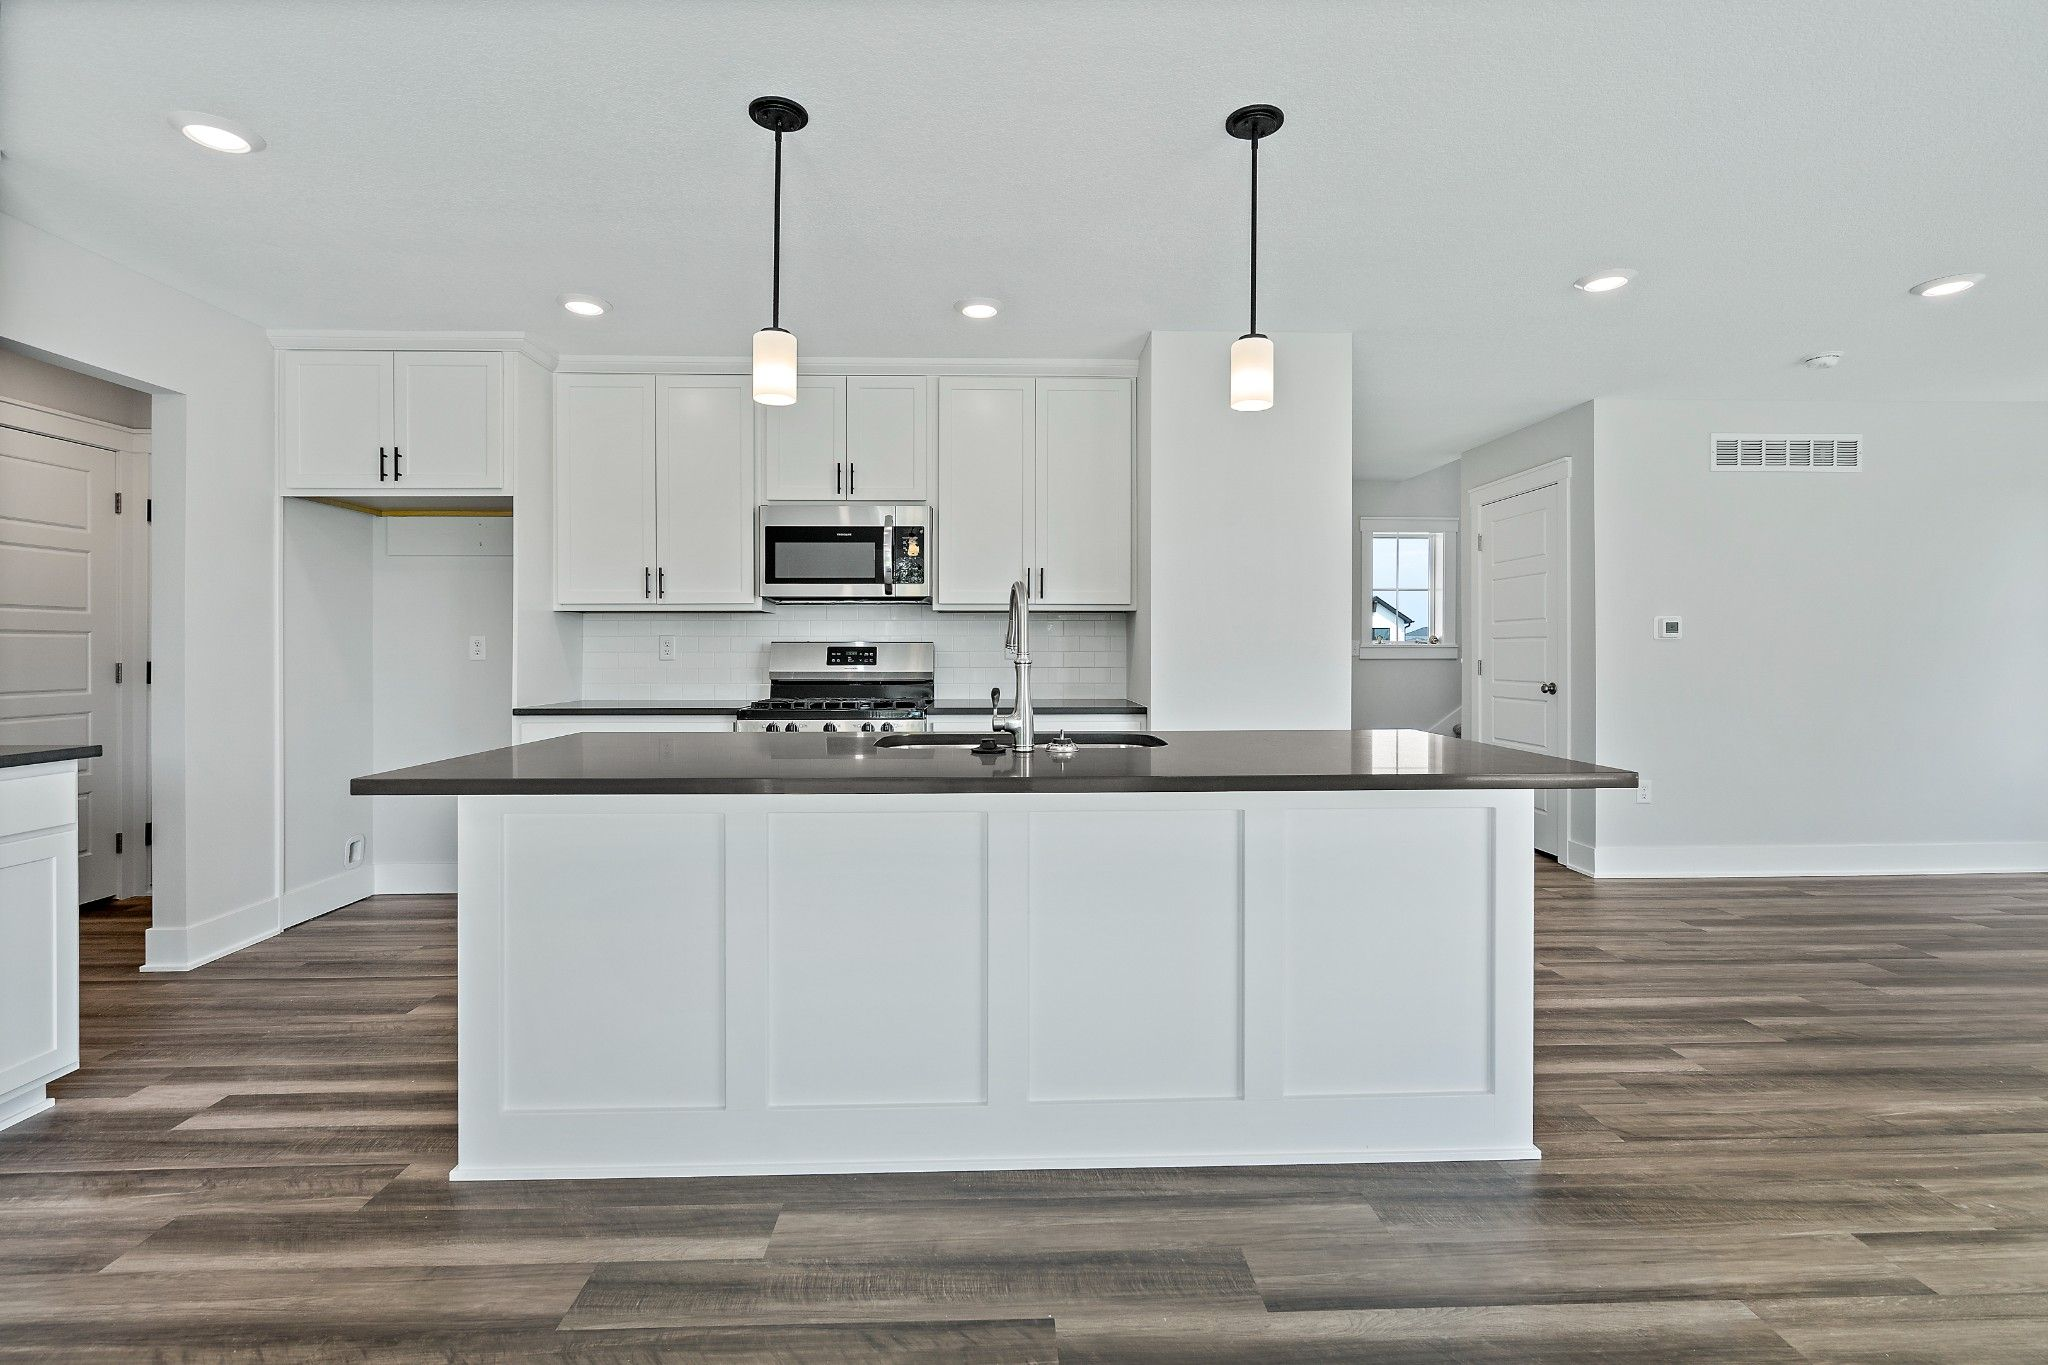 Kitchen featured in the Sage - IA By Summit Homes in Des Moines, IA